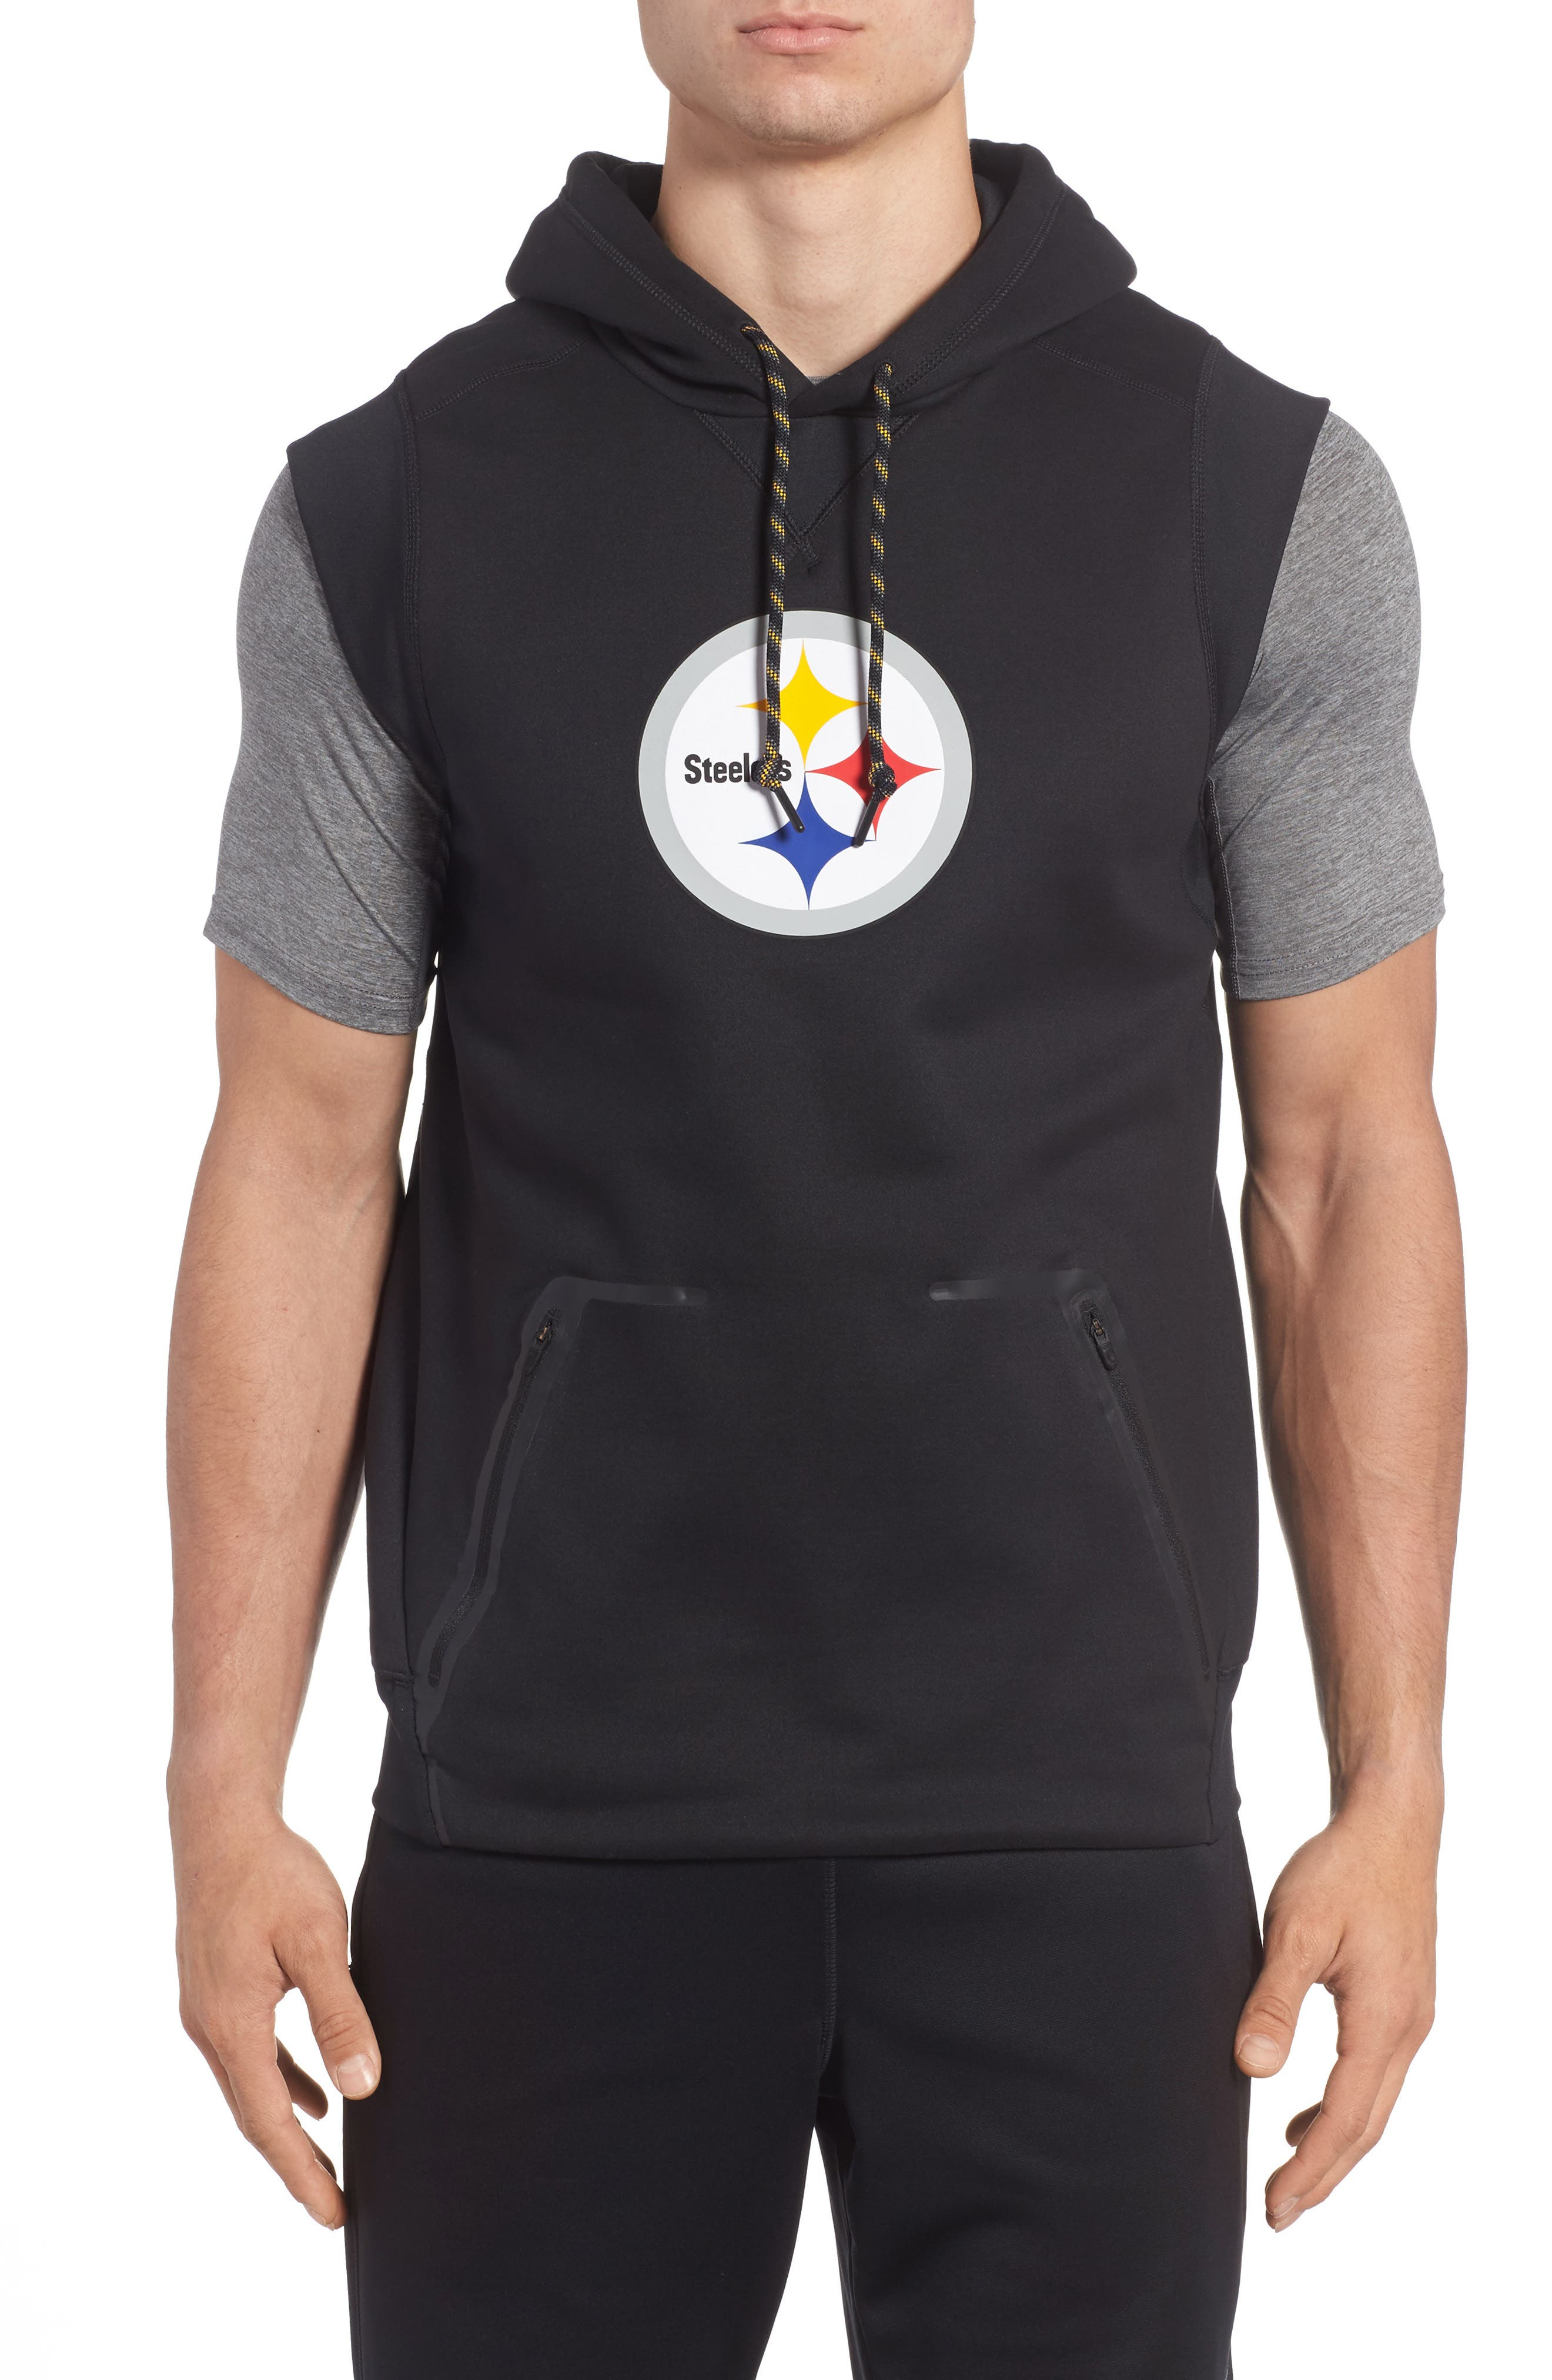 Nike Therma-FIT NFL Graphic Sleeveless Hoodie